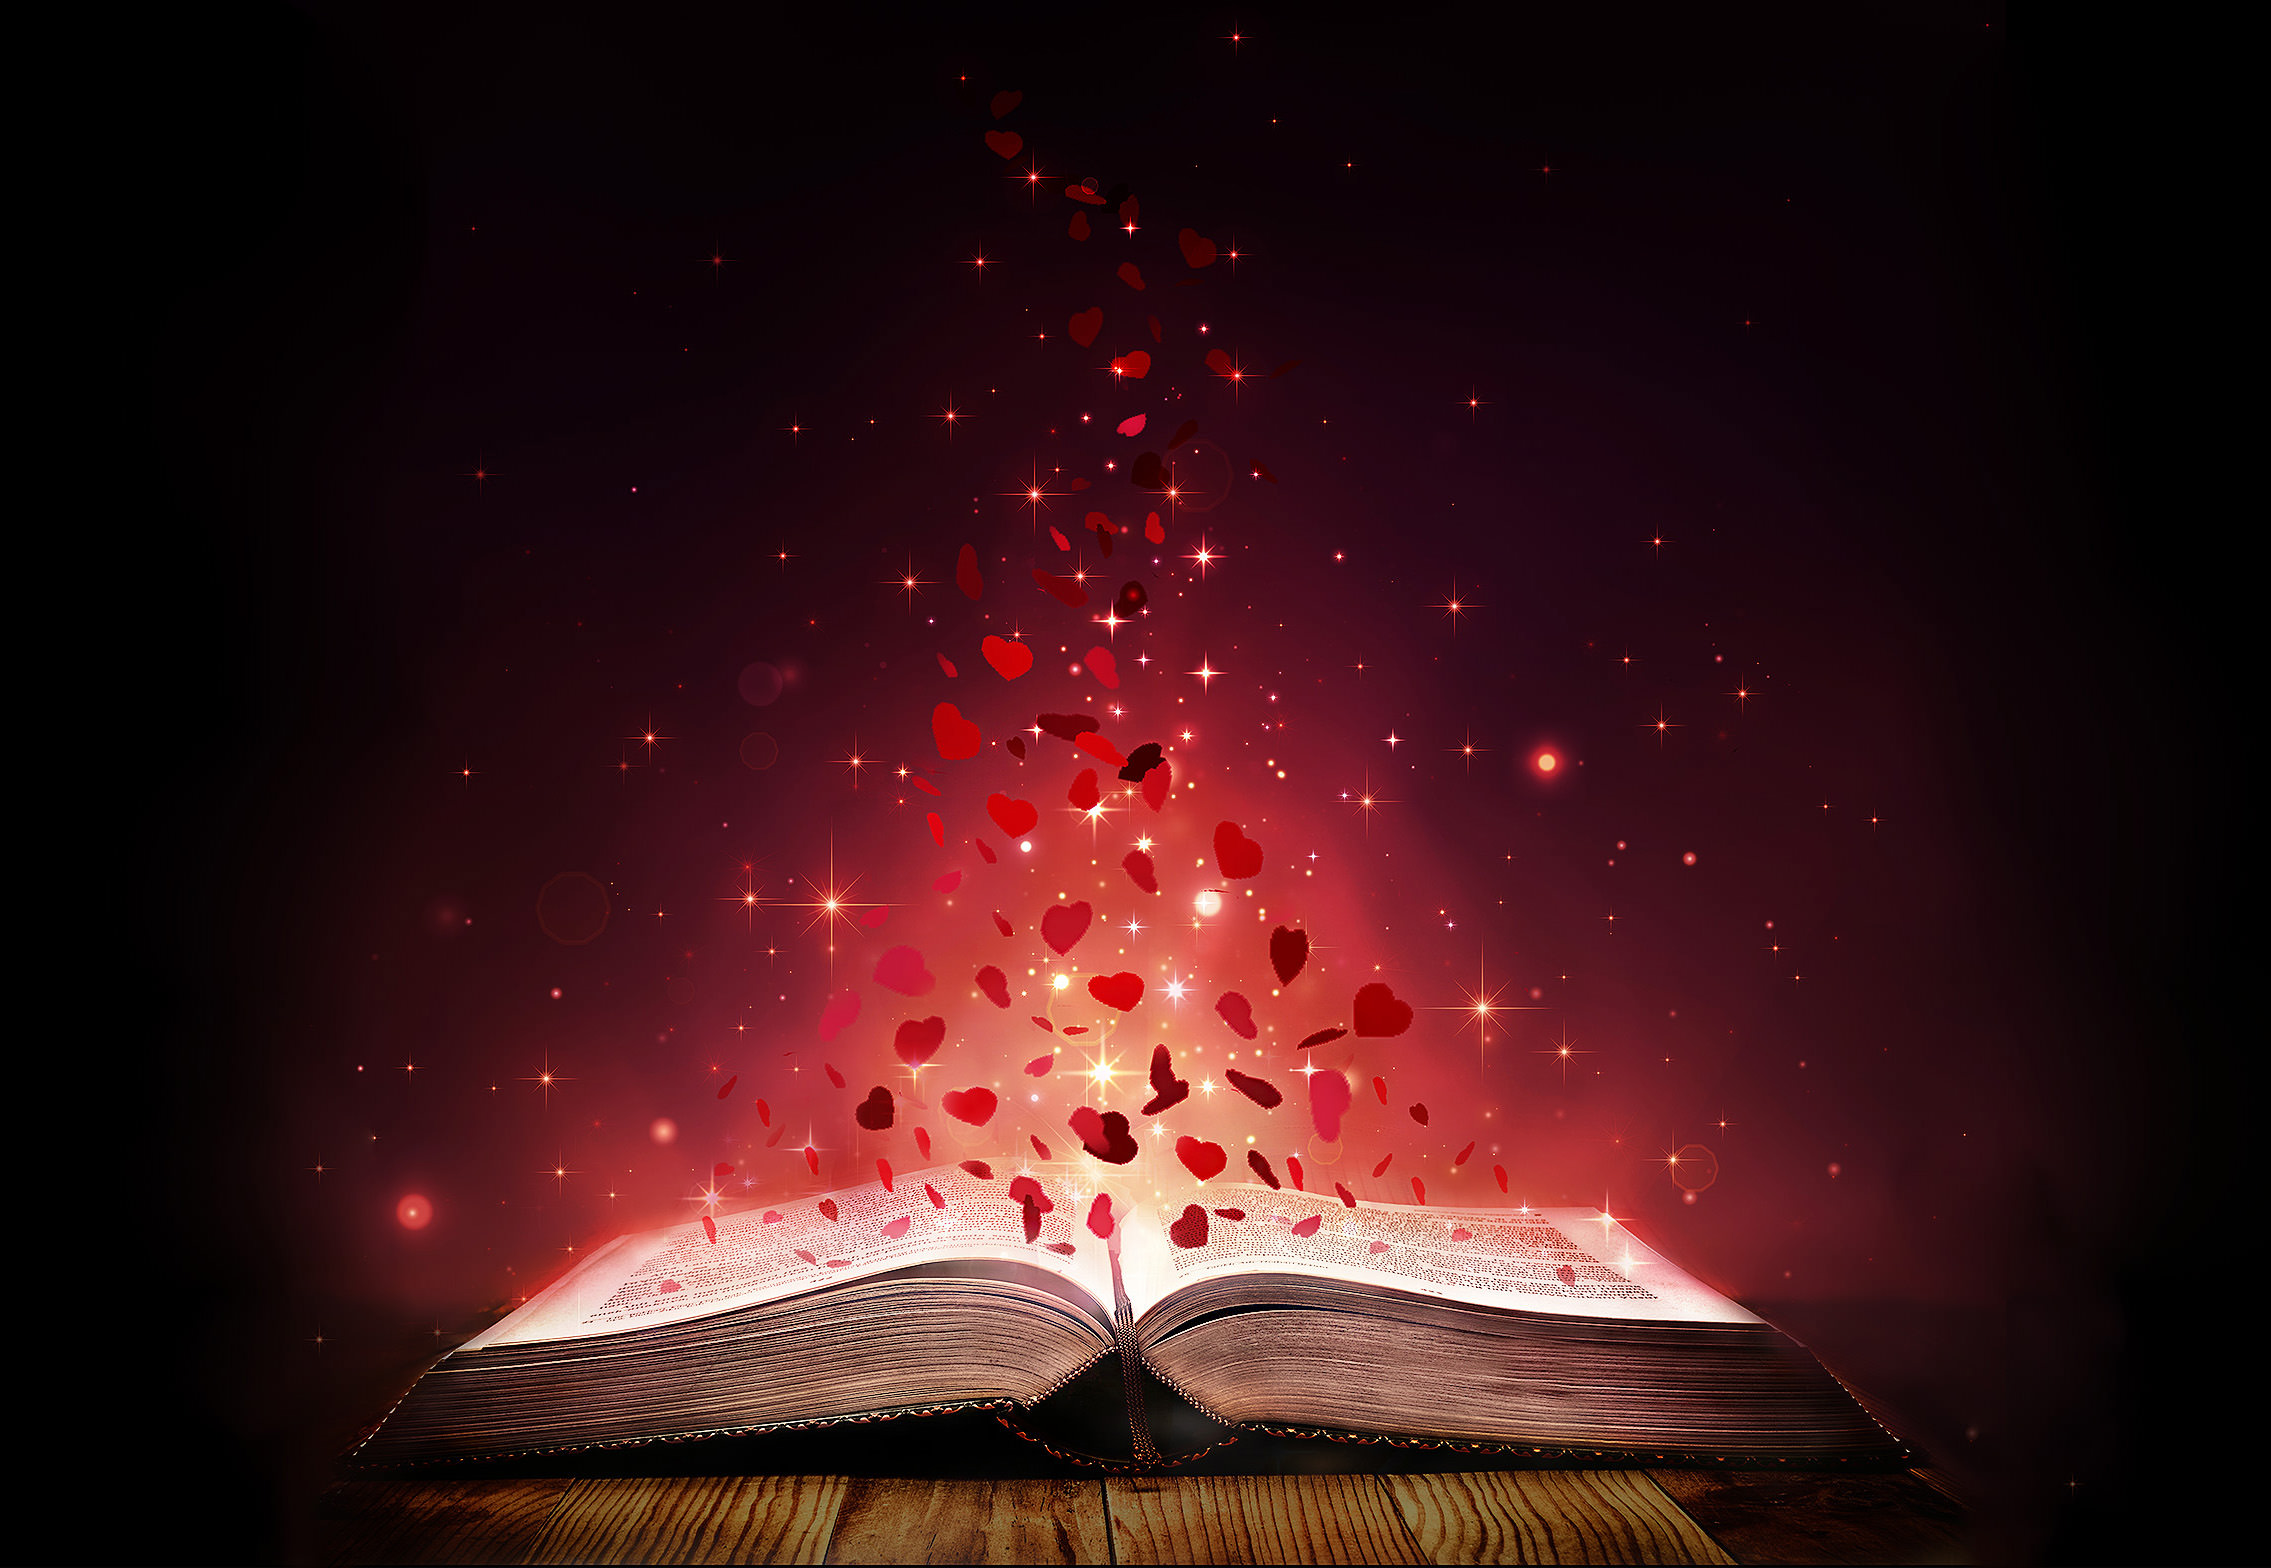 open books with glowing hearts